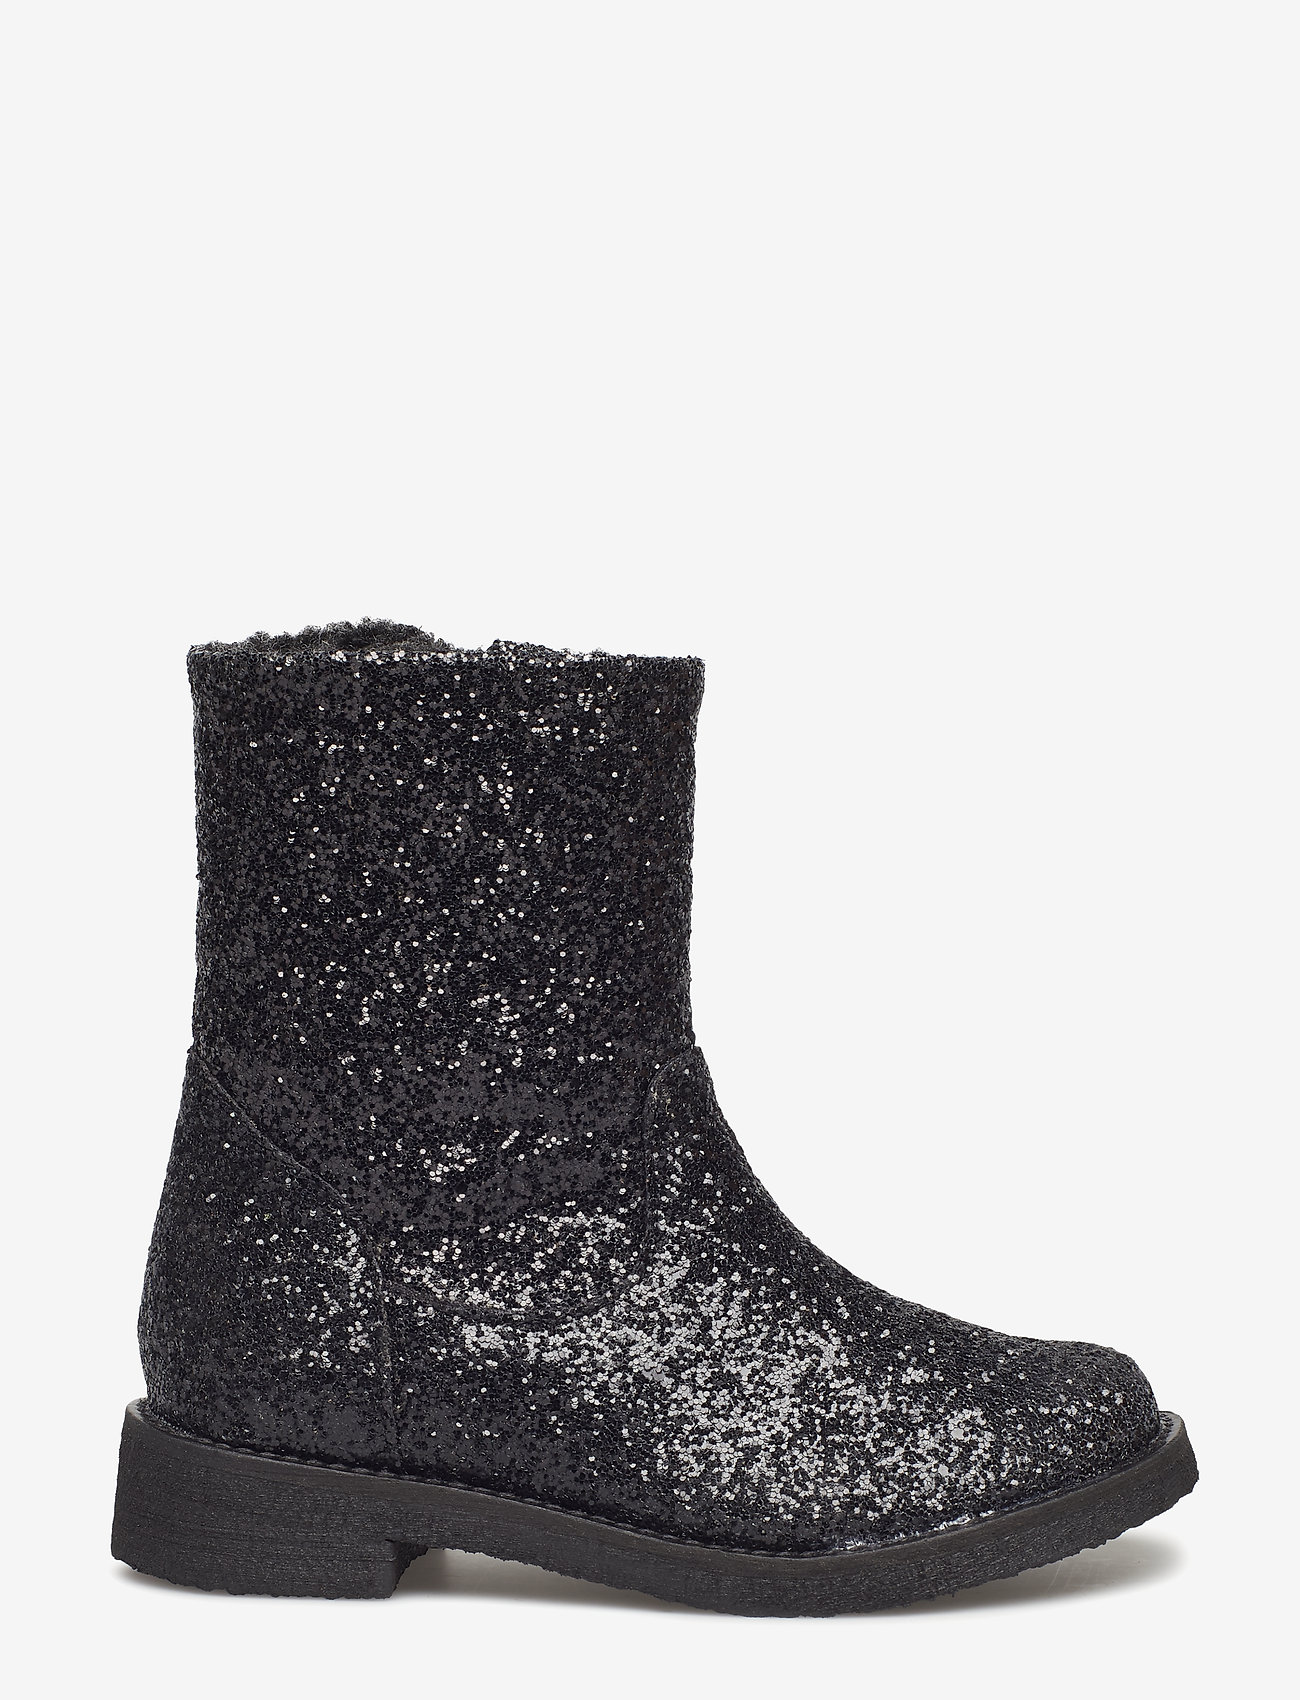 Petit by Sofie Schnoor - Glitter boot - bottes - black - 1